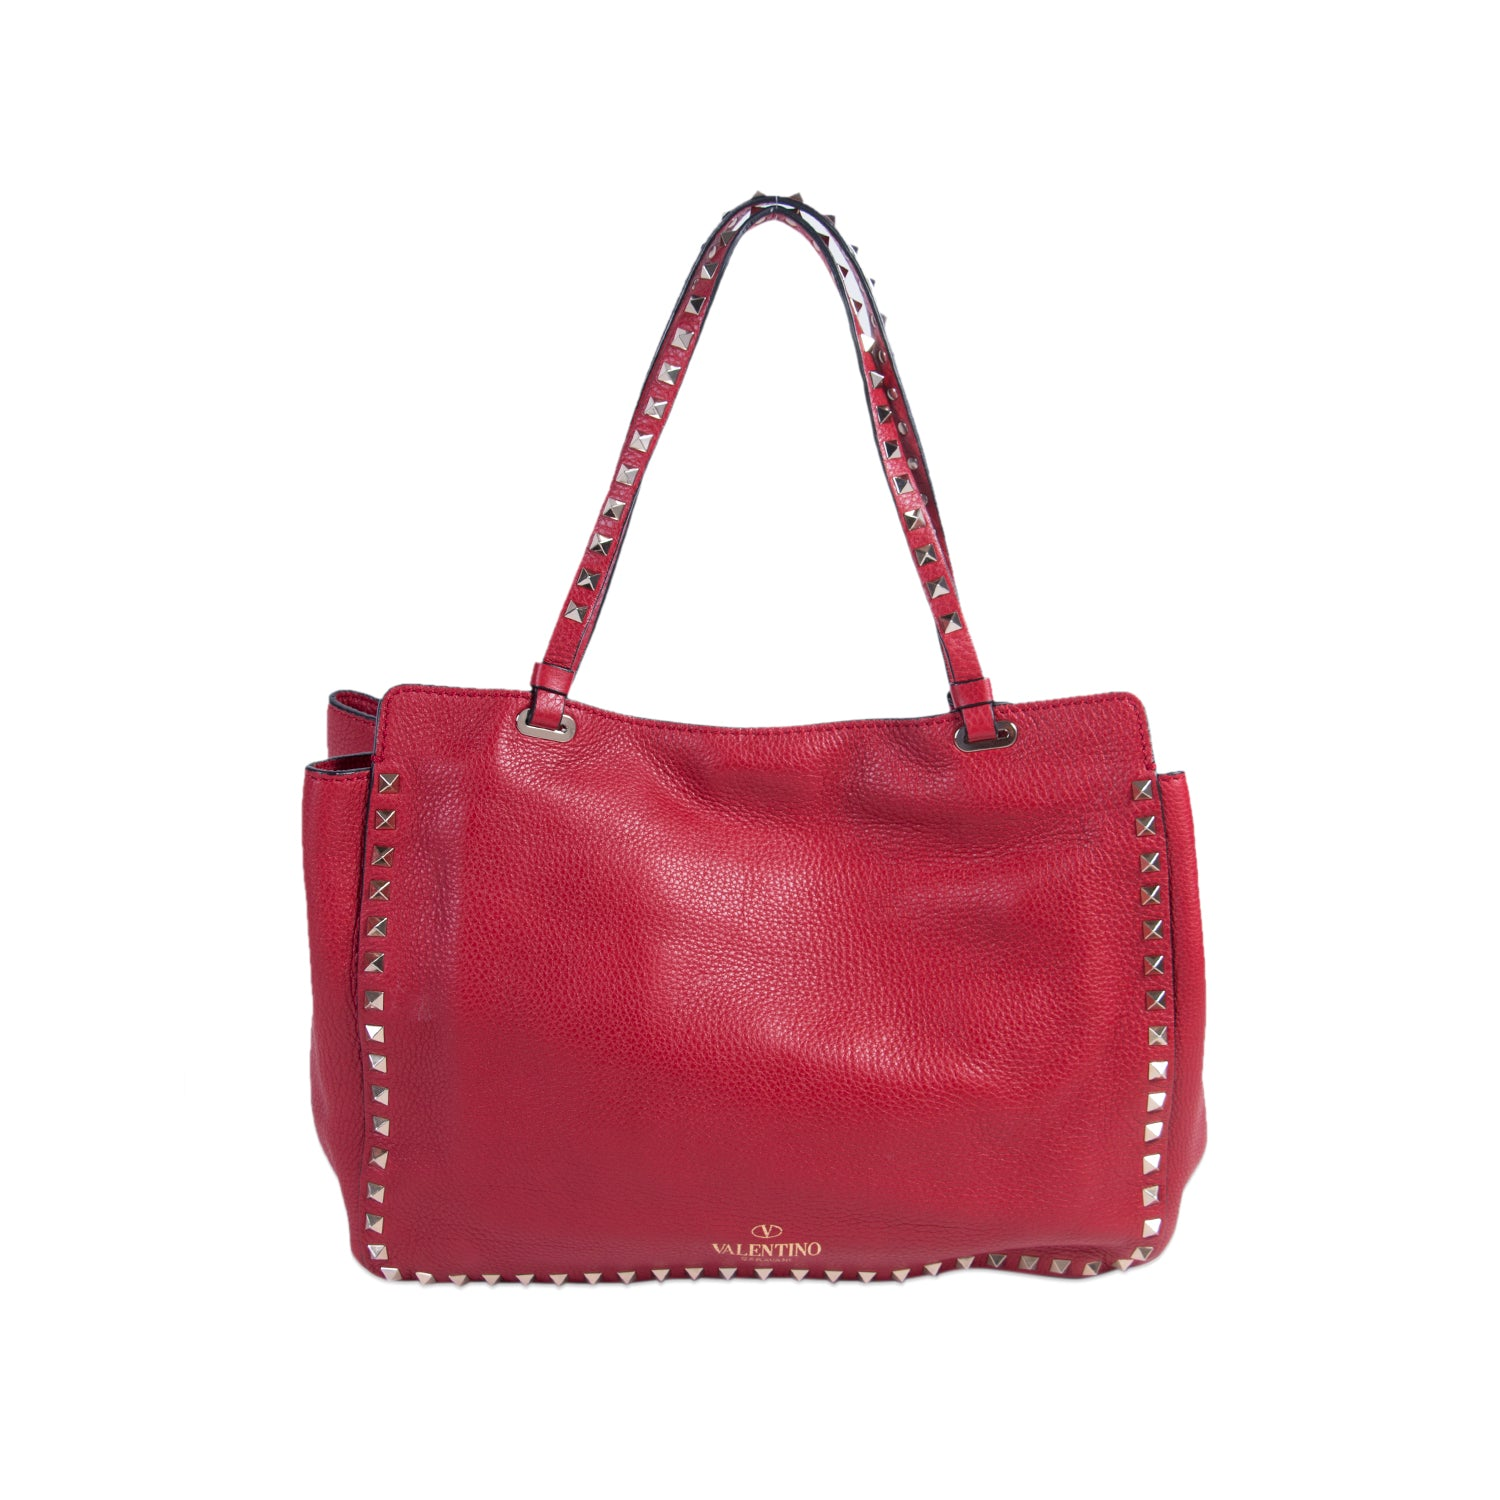 196ee0fa443 Shop Collection of Women Bags at revogue